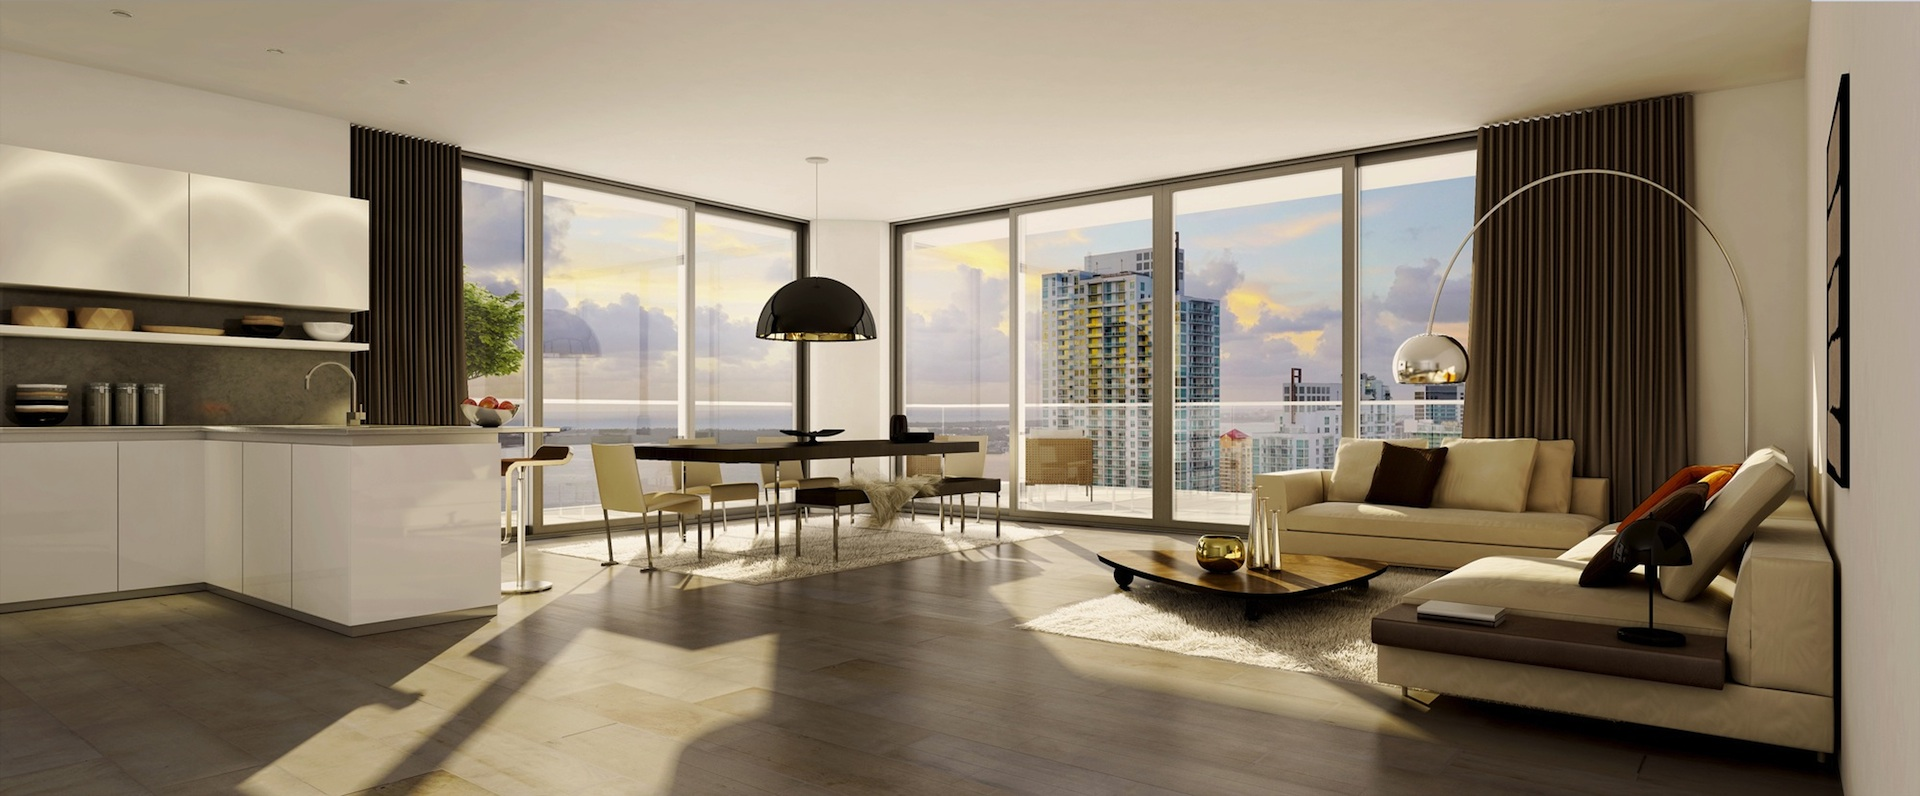 Luxury Apartments In Coral Gables